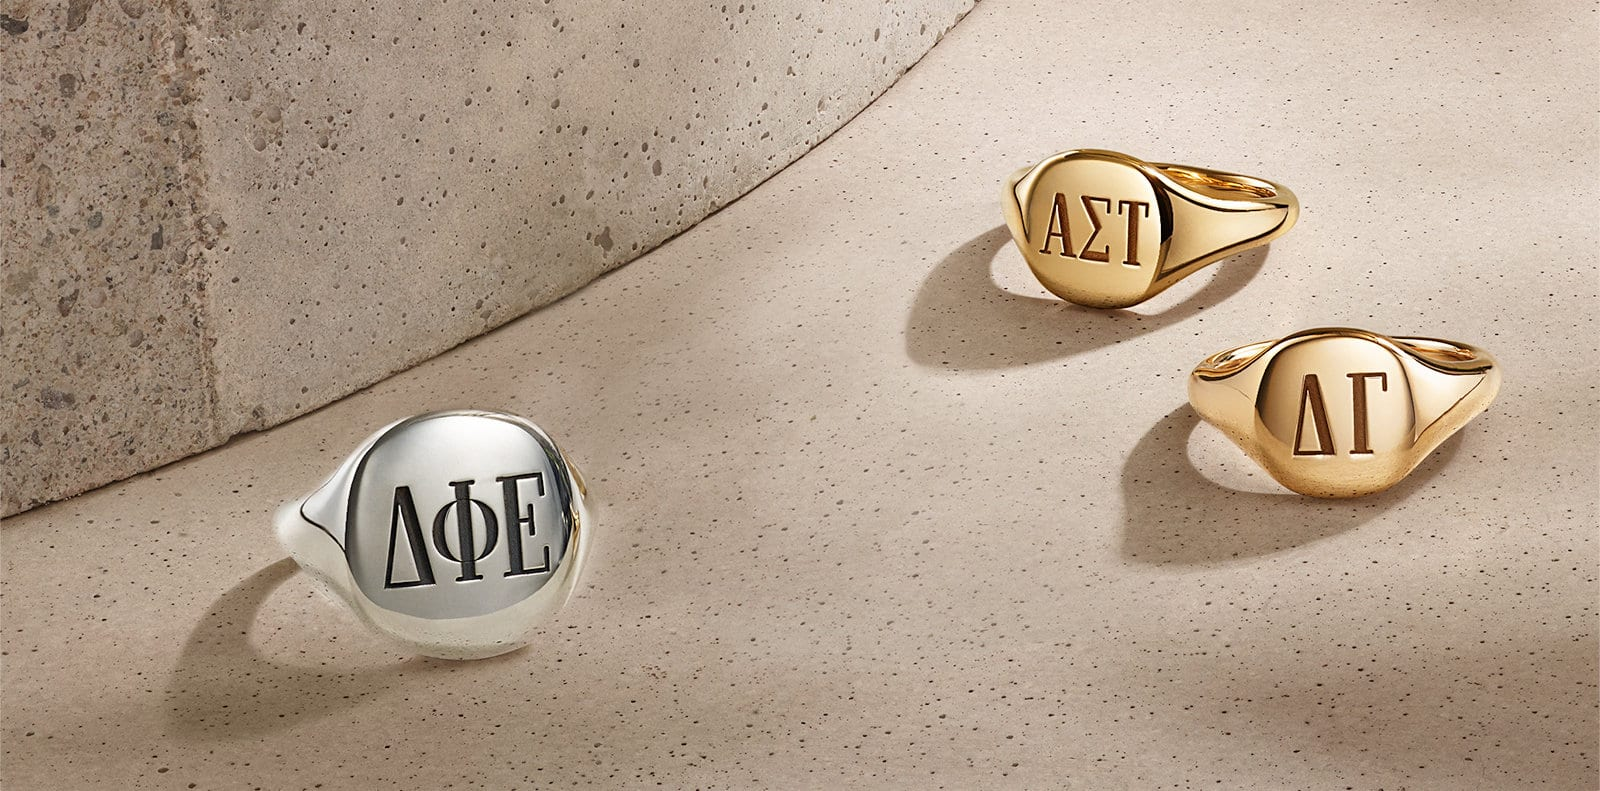 A color photo of three David Yurman Pinky Rings engraved with Greek letters, all scattered on top of a beige-colored stone background with shadows. Two rings are in 18K yellow gold and one is in sterling silver.